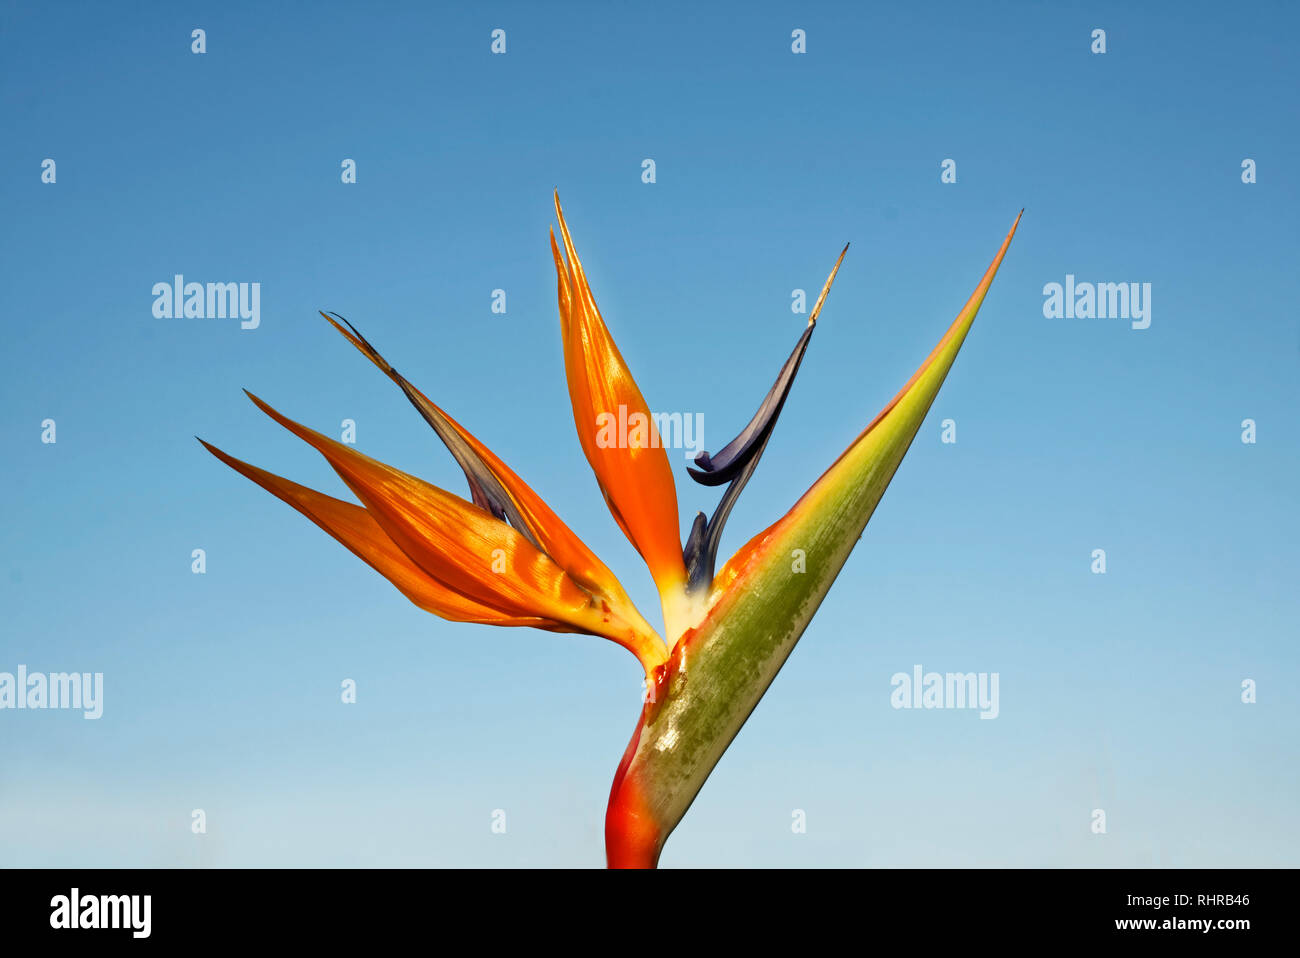 Bird of Paradise, cultivated flower, colorful, unique